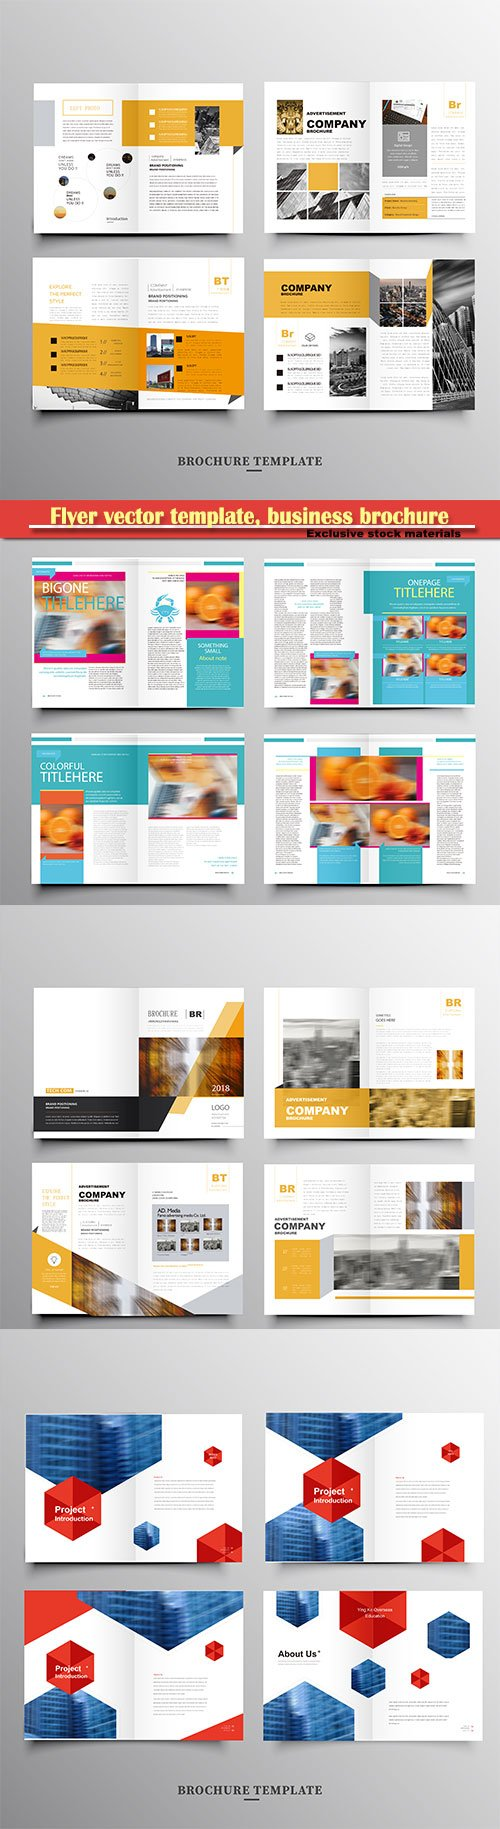 Flyer vector template, business brochure, magazine cover # 30